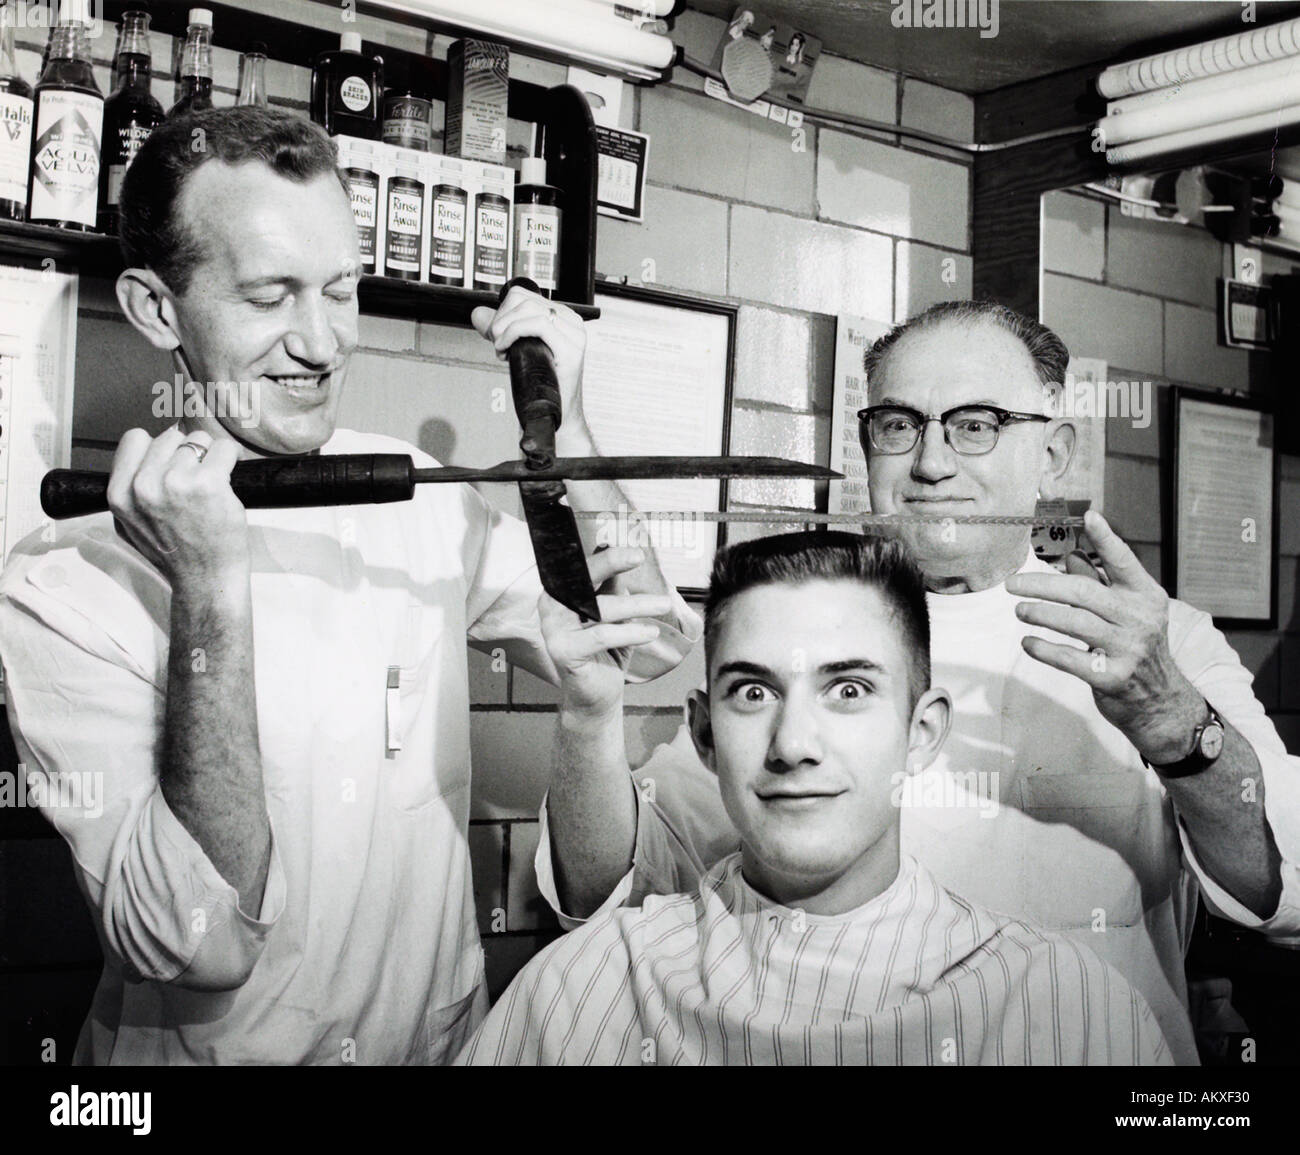 1950u0027s Teenager Getting A Comical Flattop Haircut With Hedge Trimmers At A  Barbershop   Stock Image